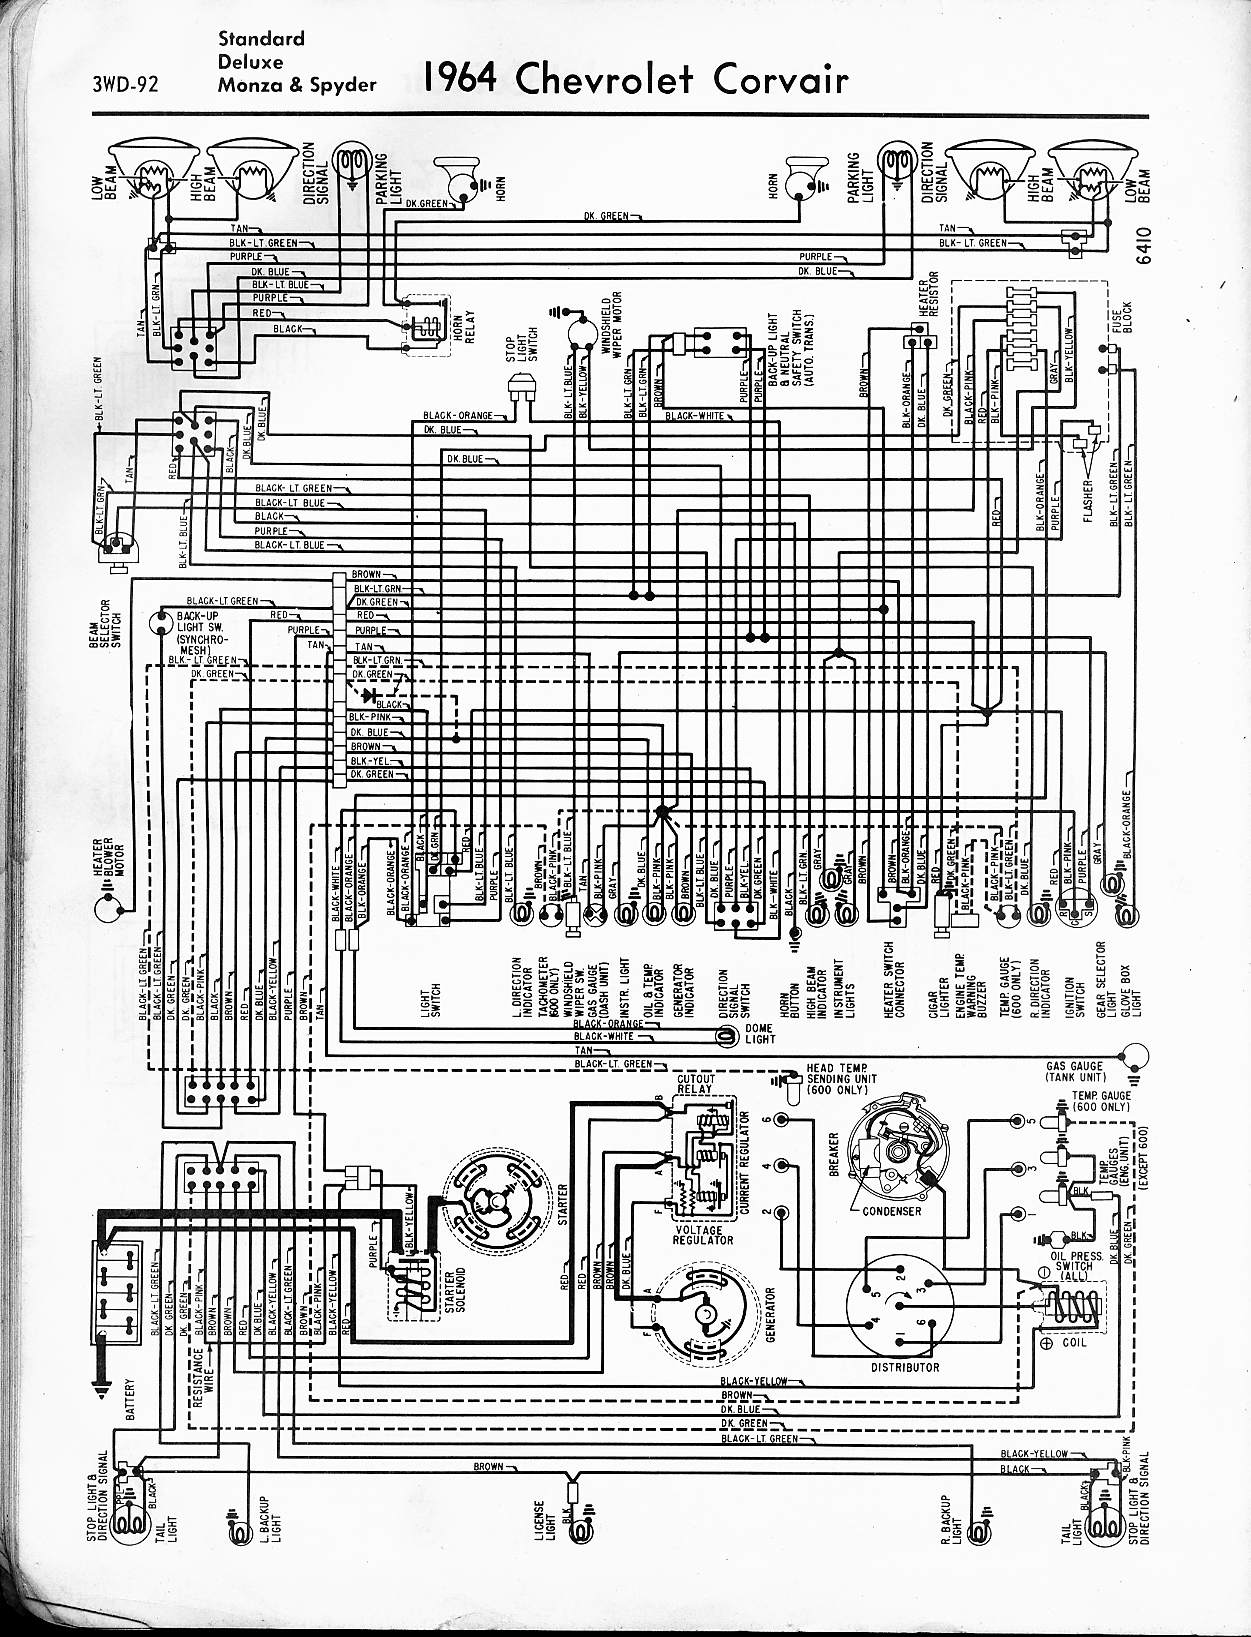 57 65 chevy wiring diagrams1964 corvair std , deluxe, monza, spyder